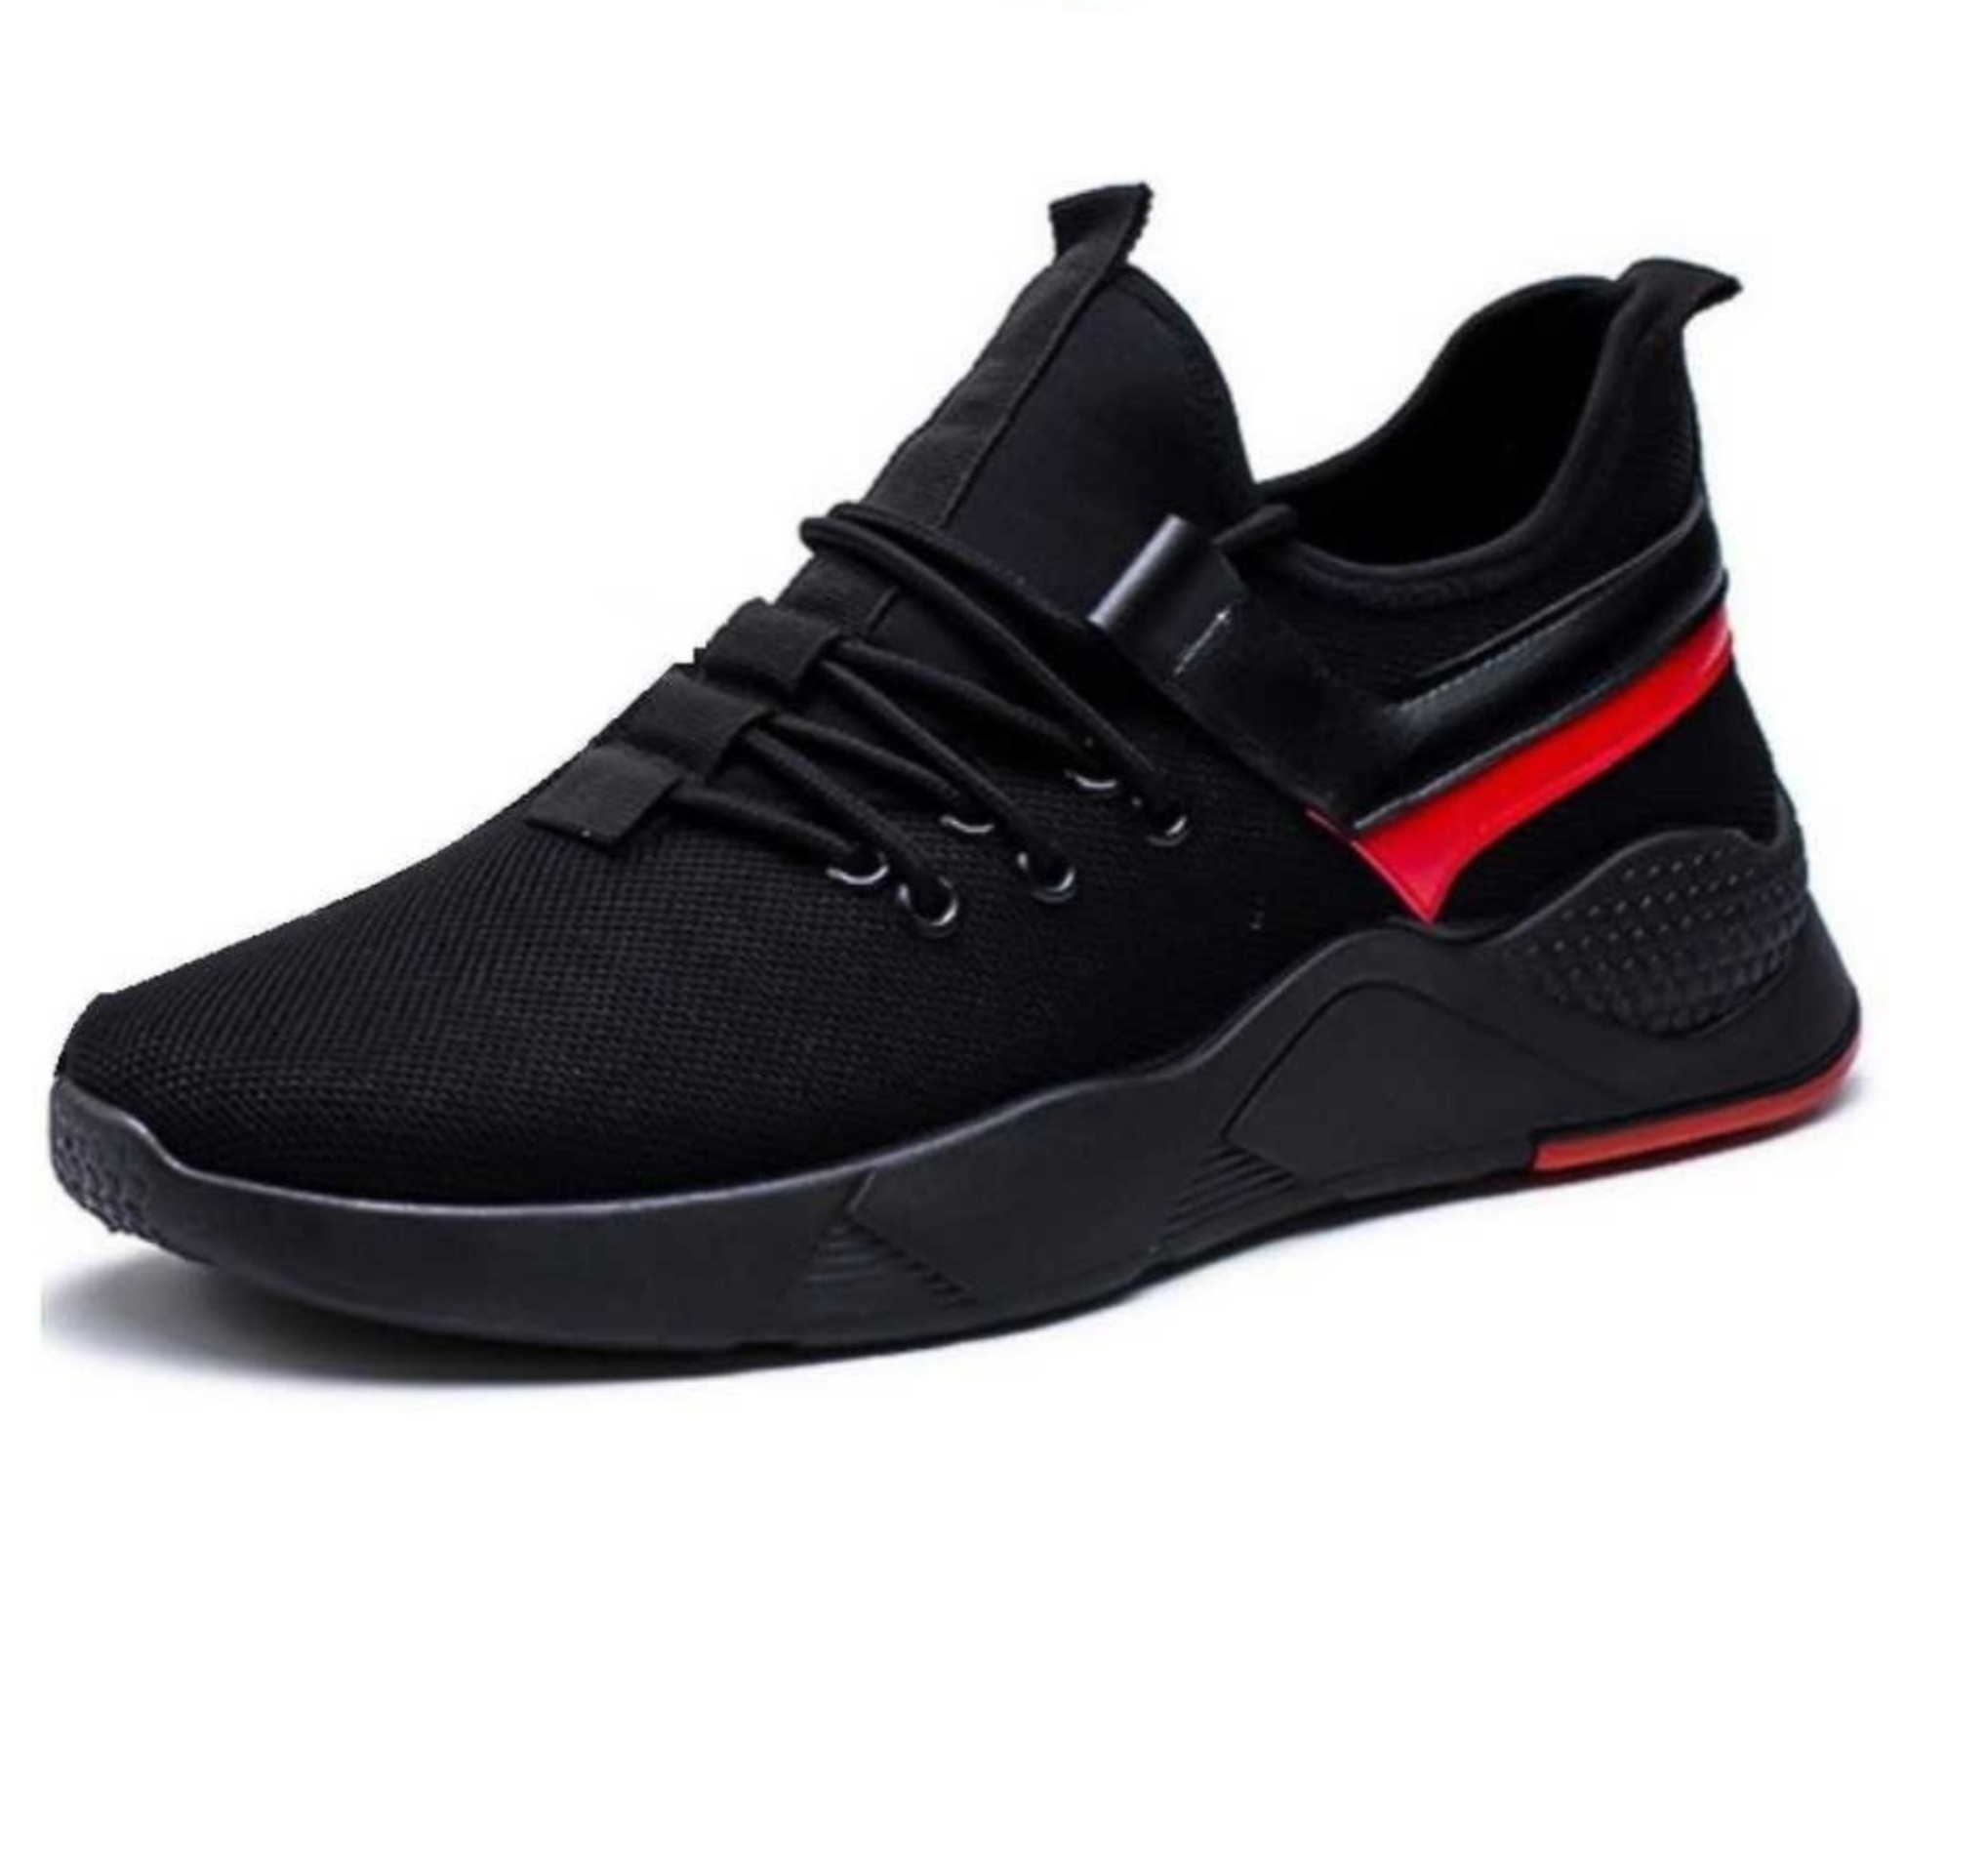 RAYSFIELD Stylish Running Shoes For Men-941